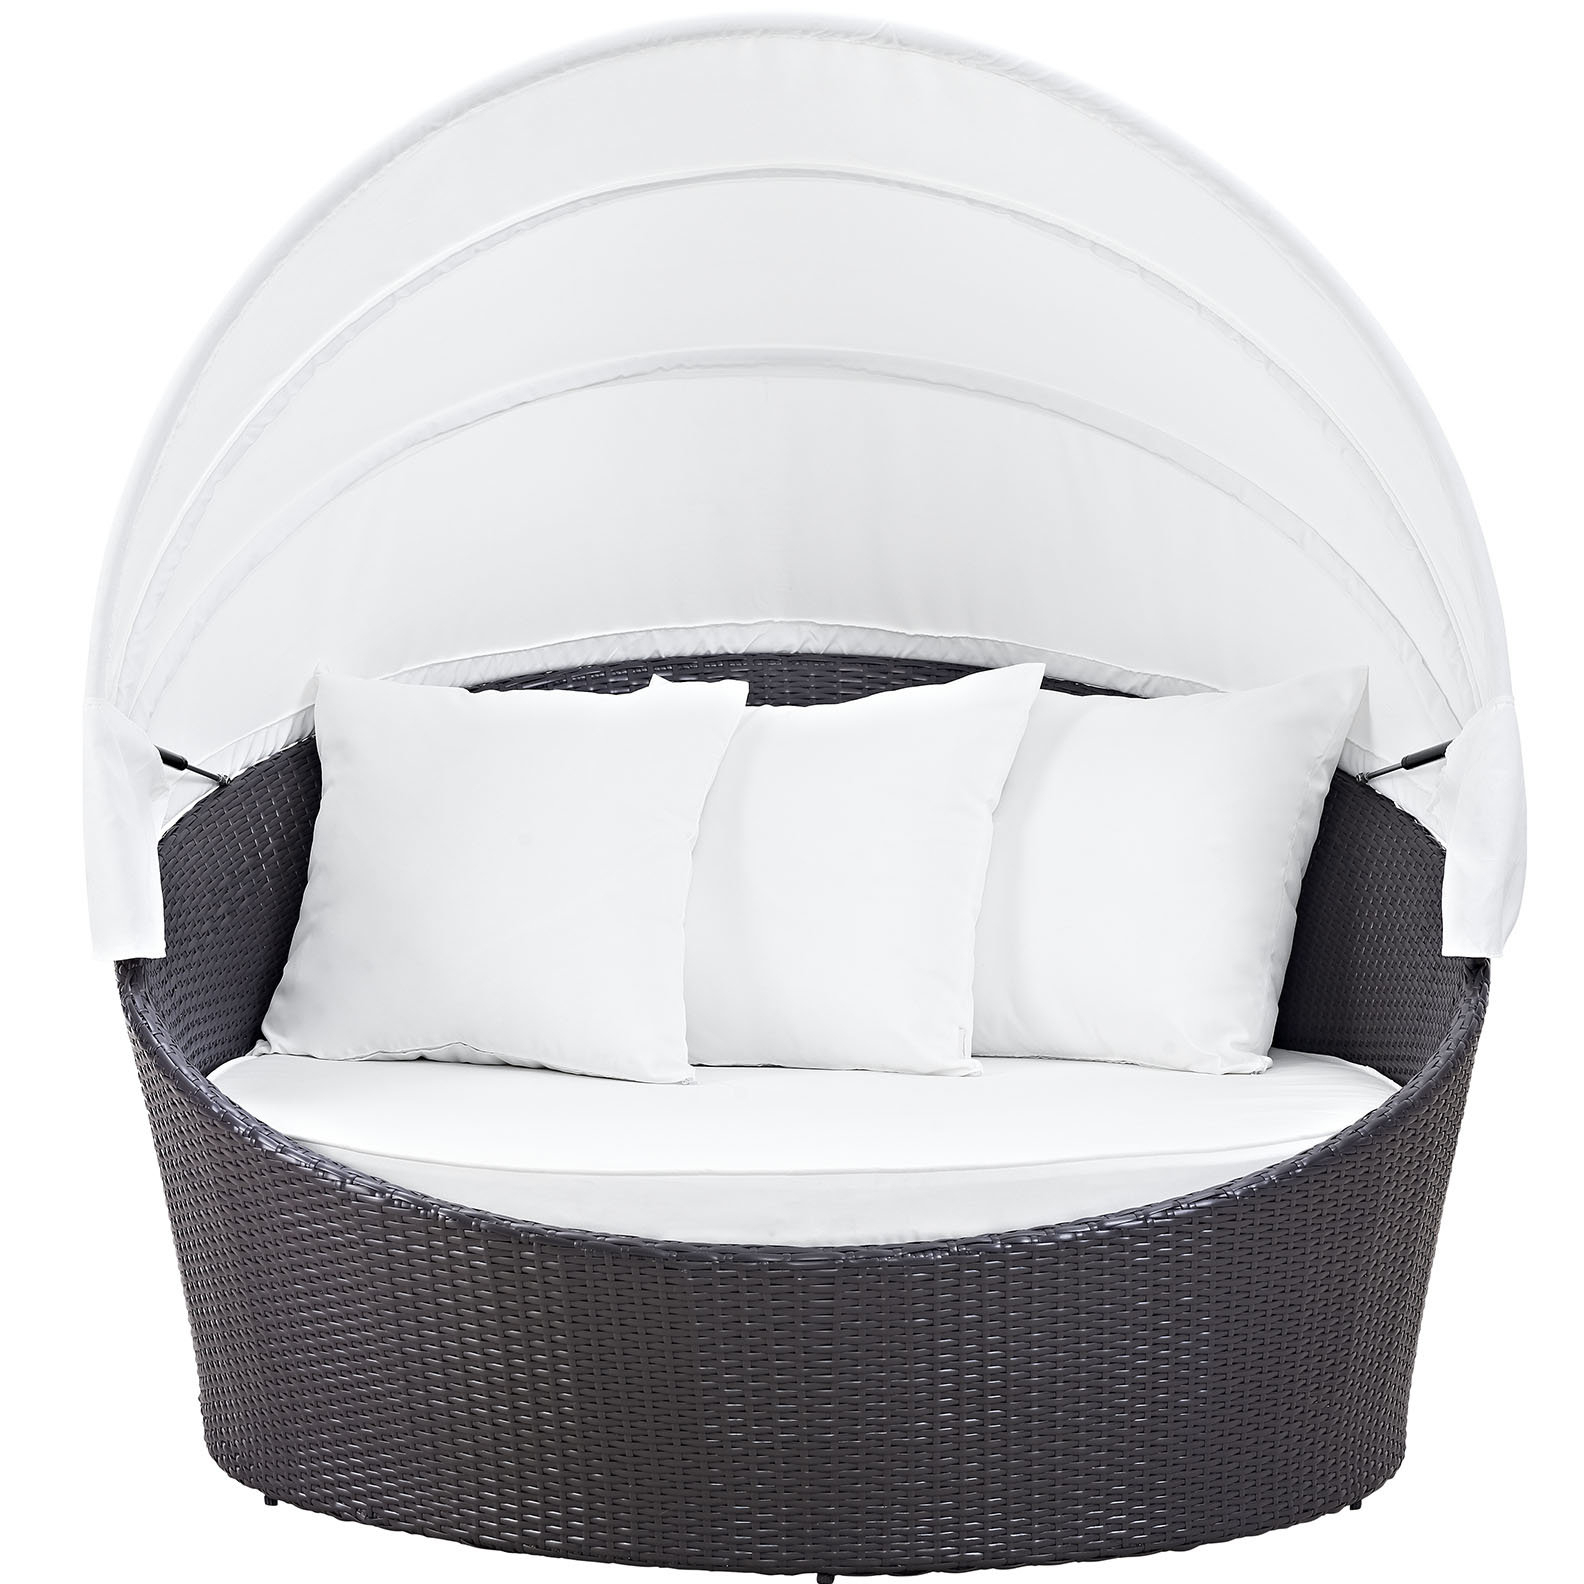 Best And Newest Fansler Patio Daybeds With Cushions With Brentwood Canopy Patio Daybed With Cushions & Reviews (View 3 of 20)